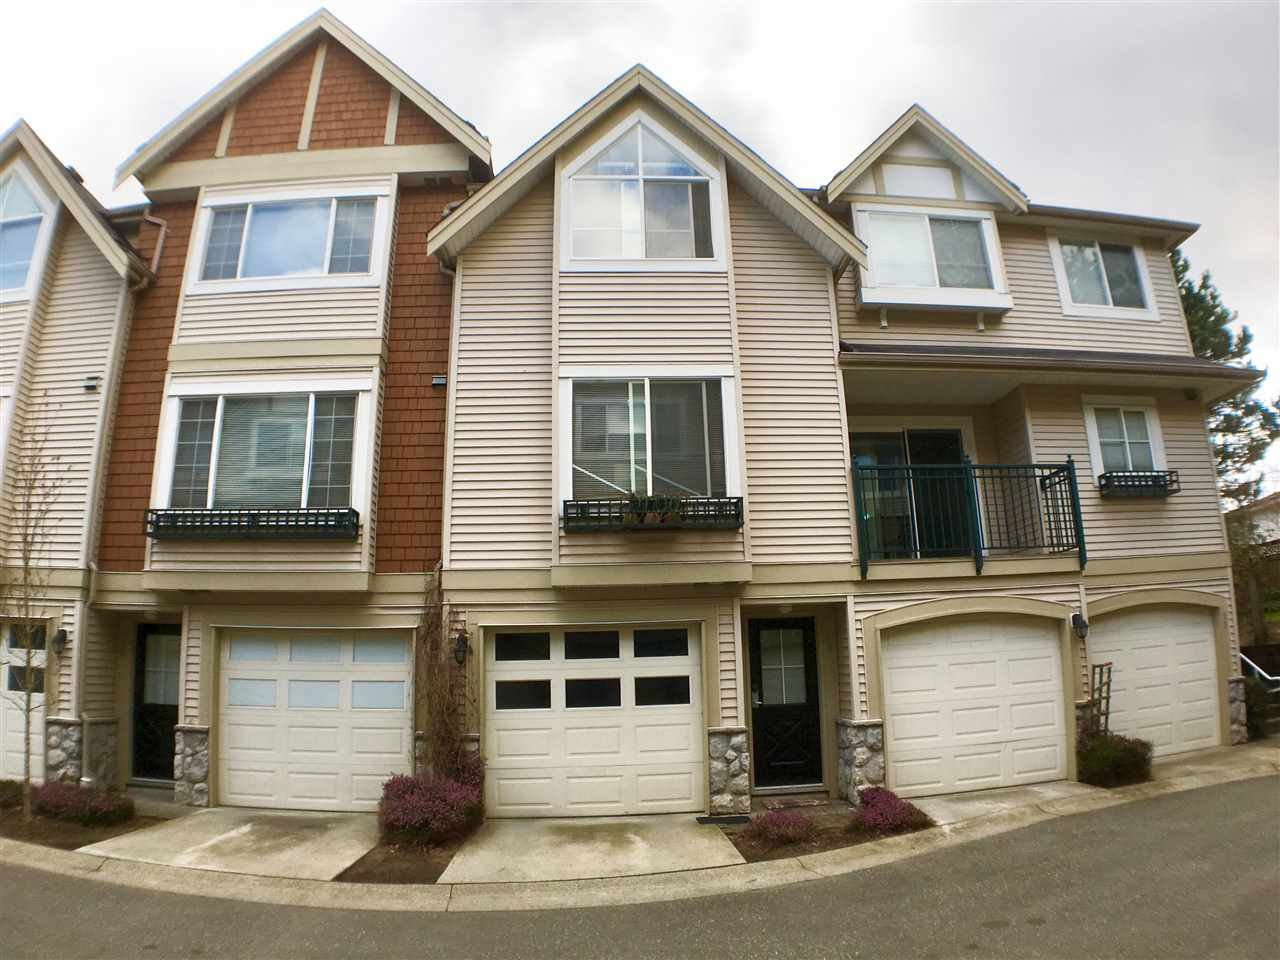 """Main Photo: 18 15488 101A Avenue in Surrey: Guildford Townhouse for sale in """"COBBLEFIELD LANE"""" (North Surrey)  : MLS®# R2252519"""